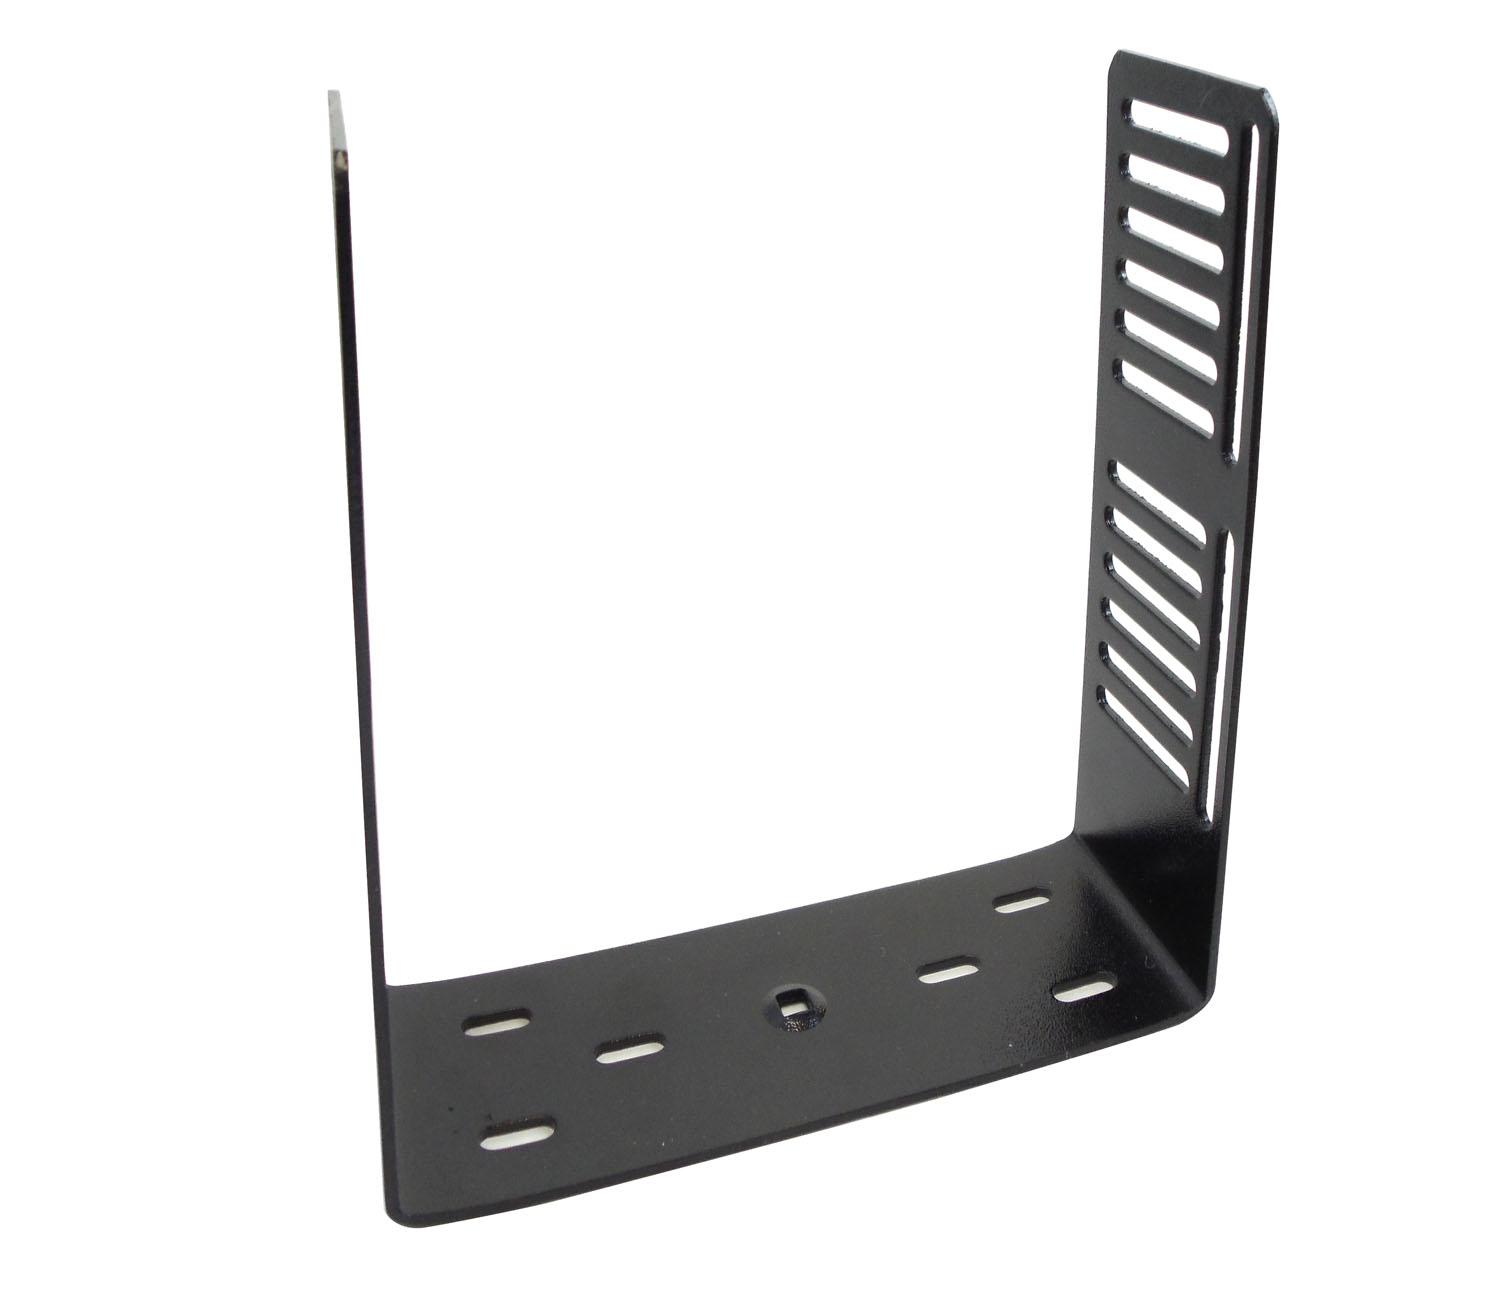 "DEEP H/D 9"" BRACKET FOR MOUNTING 2 DX RADIOS"